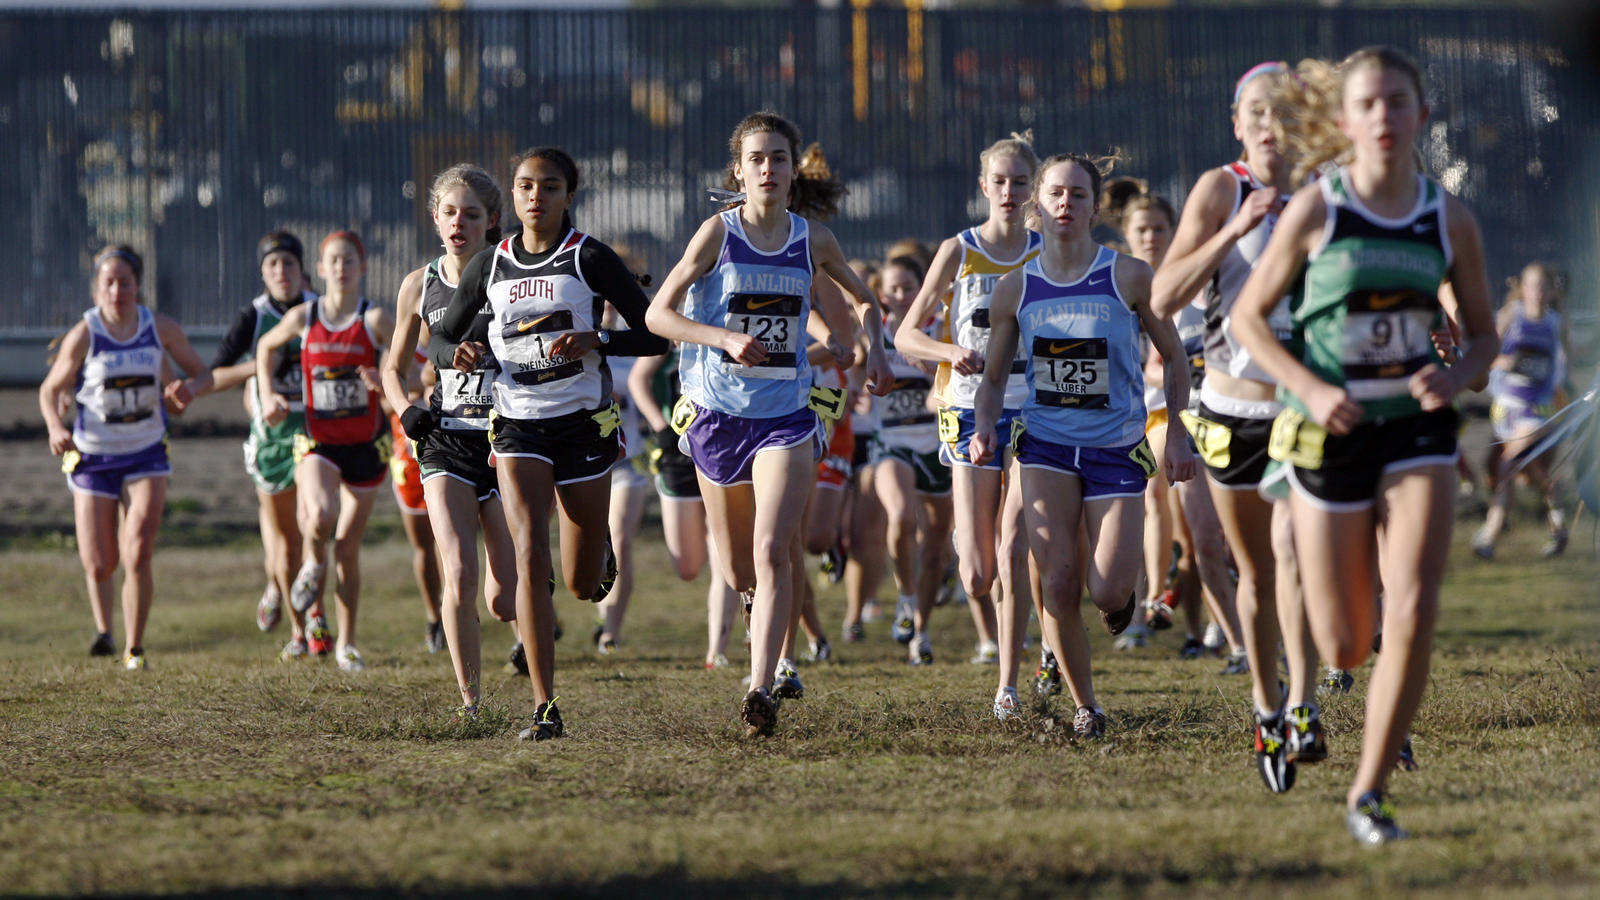 competitive price c624c bf411 Nike Cross Nationals winners crowned - Nike News